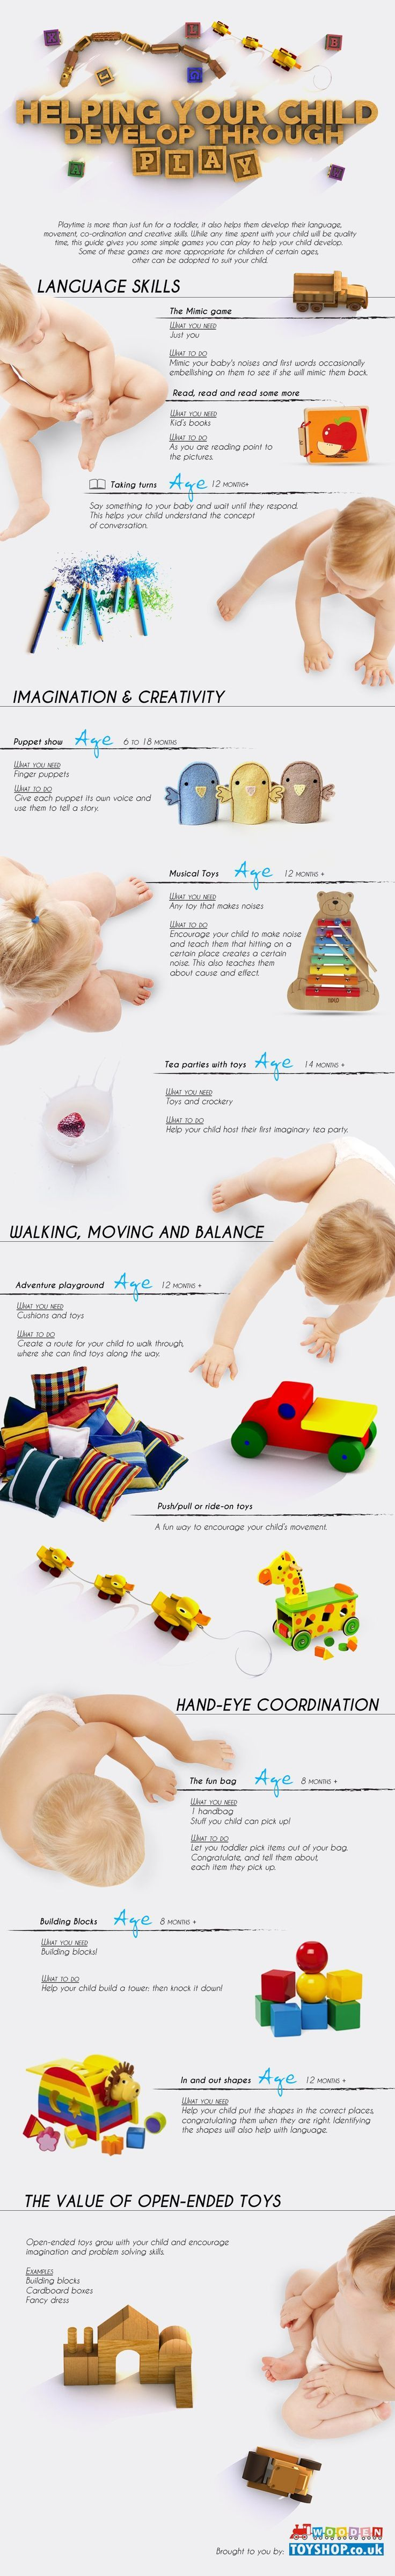 1000 images about child development on pinterest fine motor toddler development and births Fine motor development toys